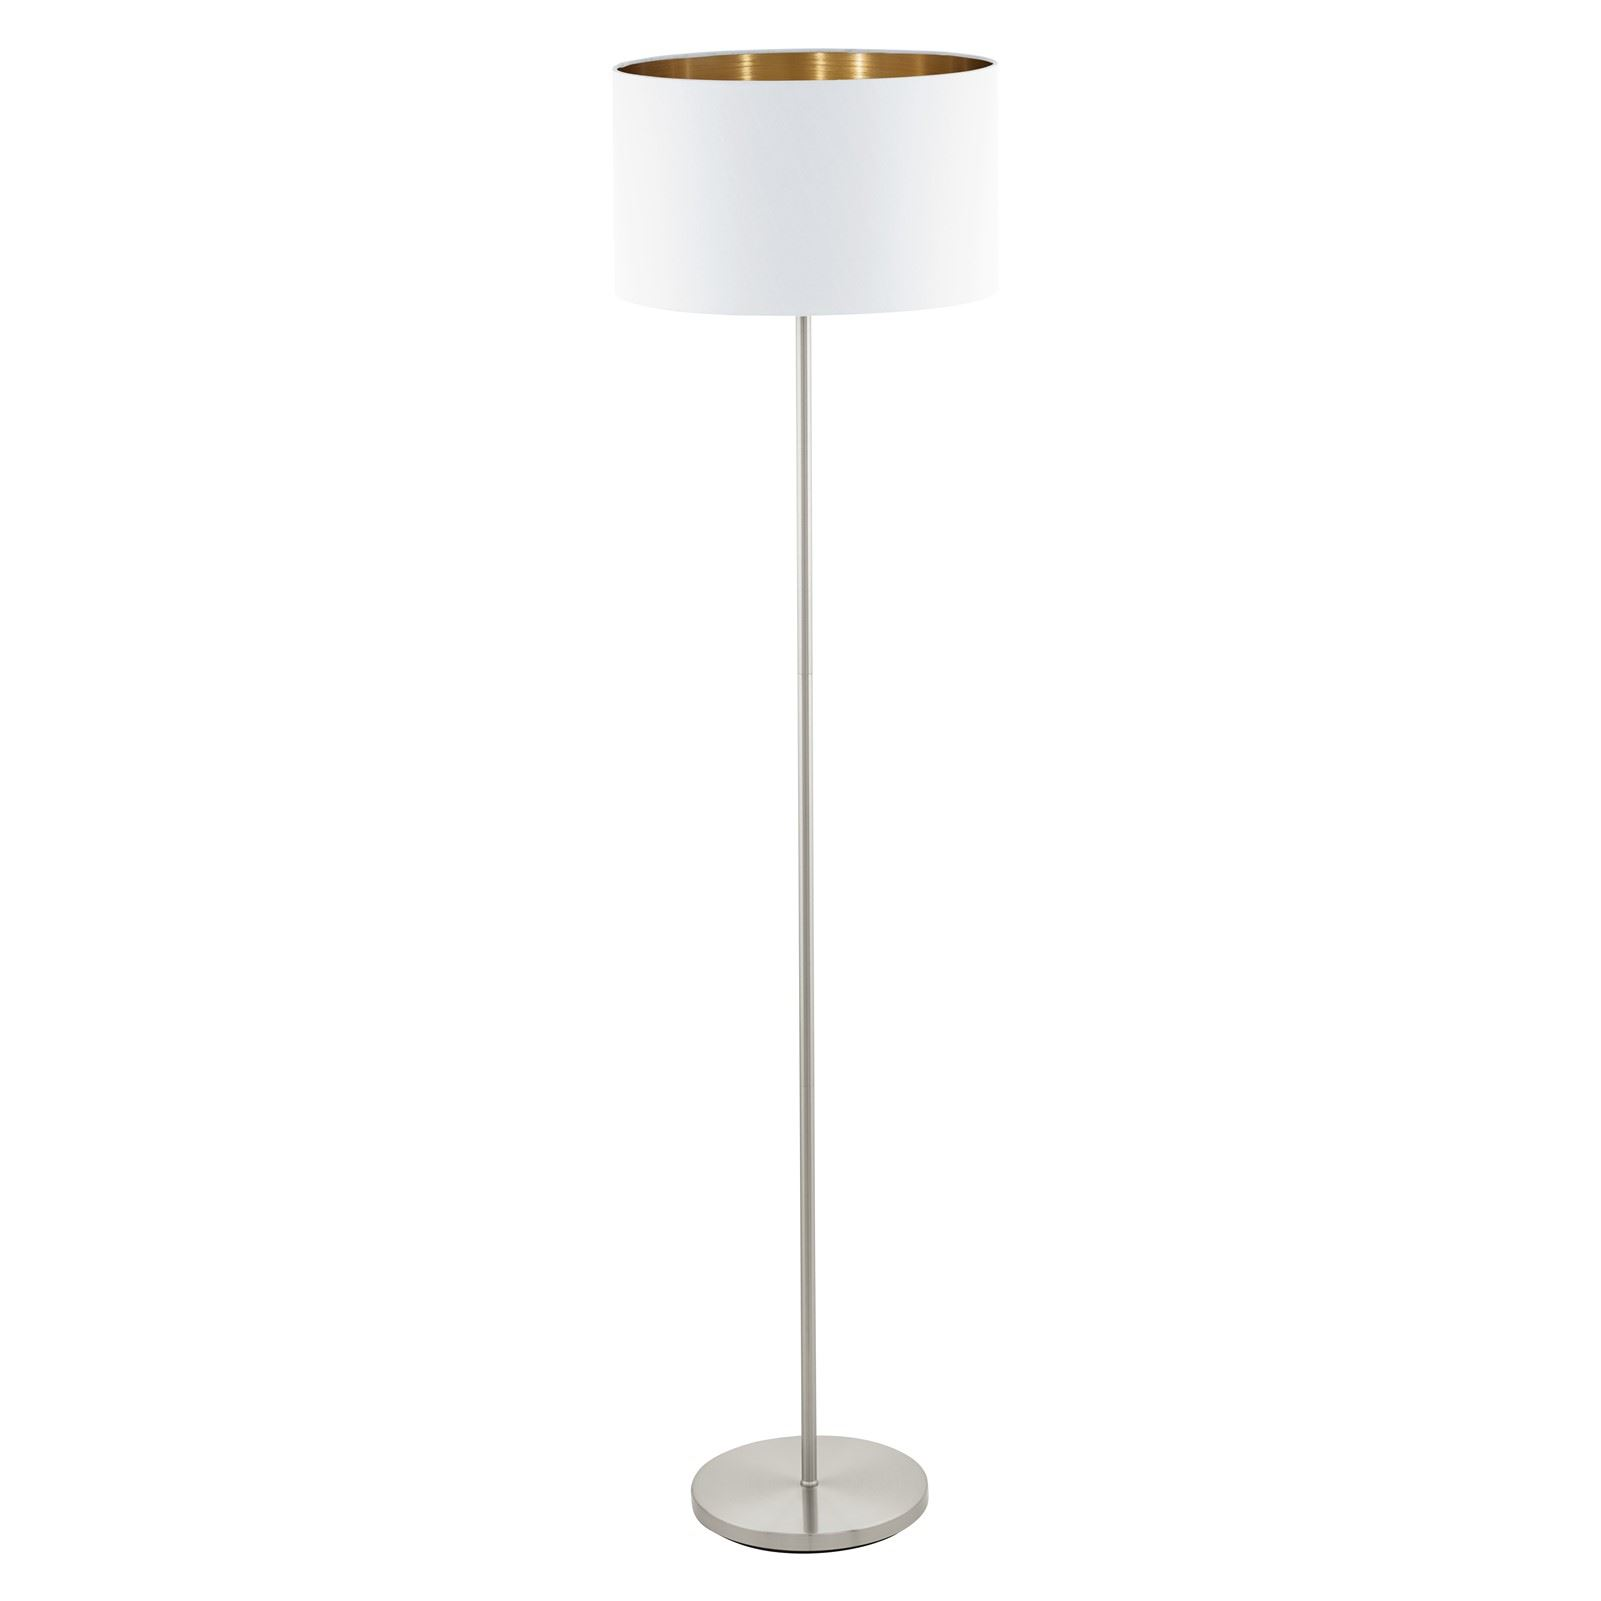 Pasteri Satin Nickel Floor Lamp With White Copper Shade Foot-Switch